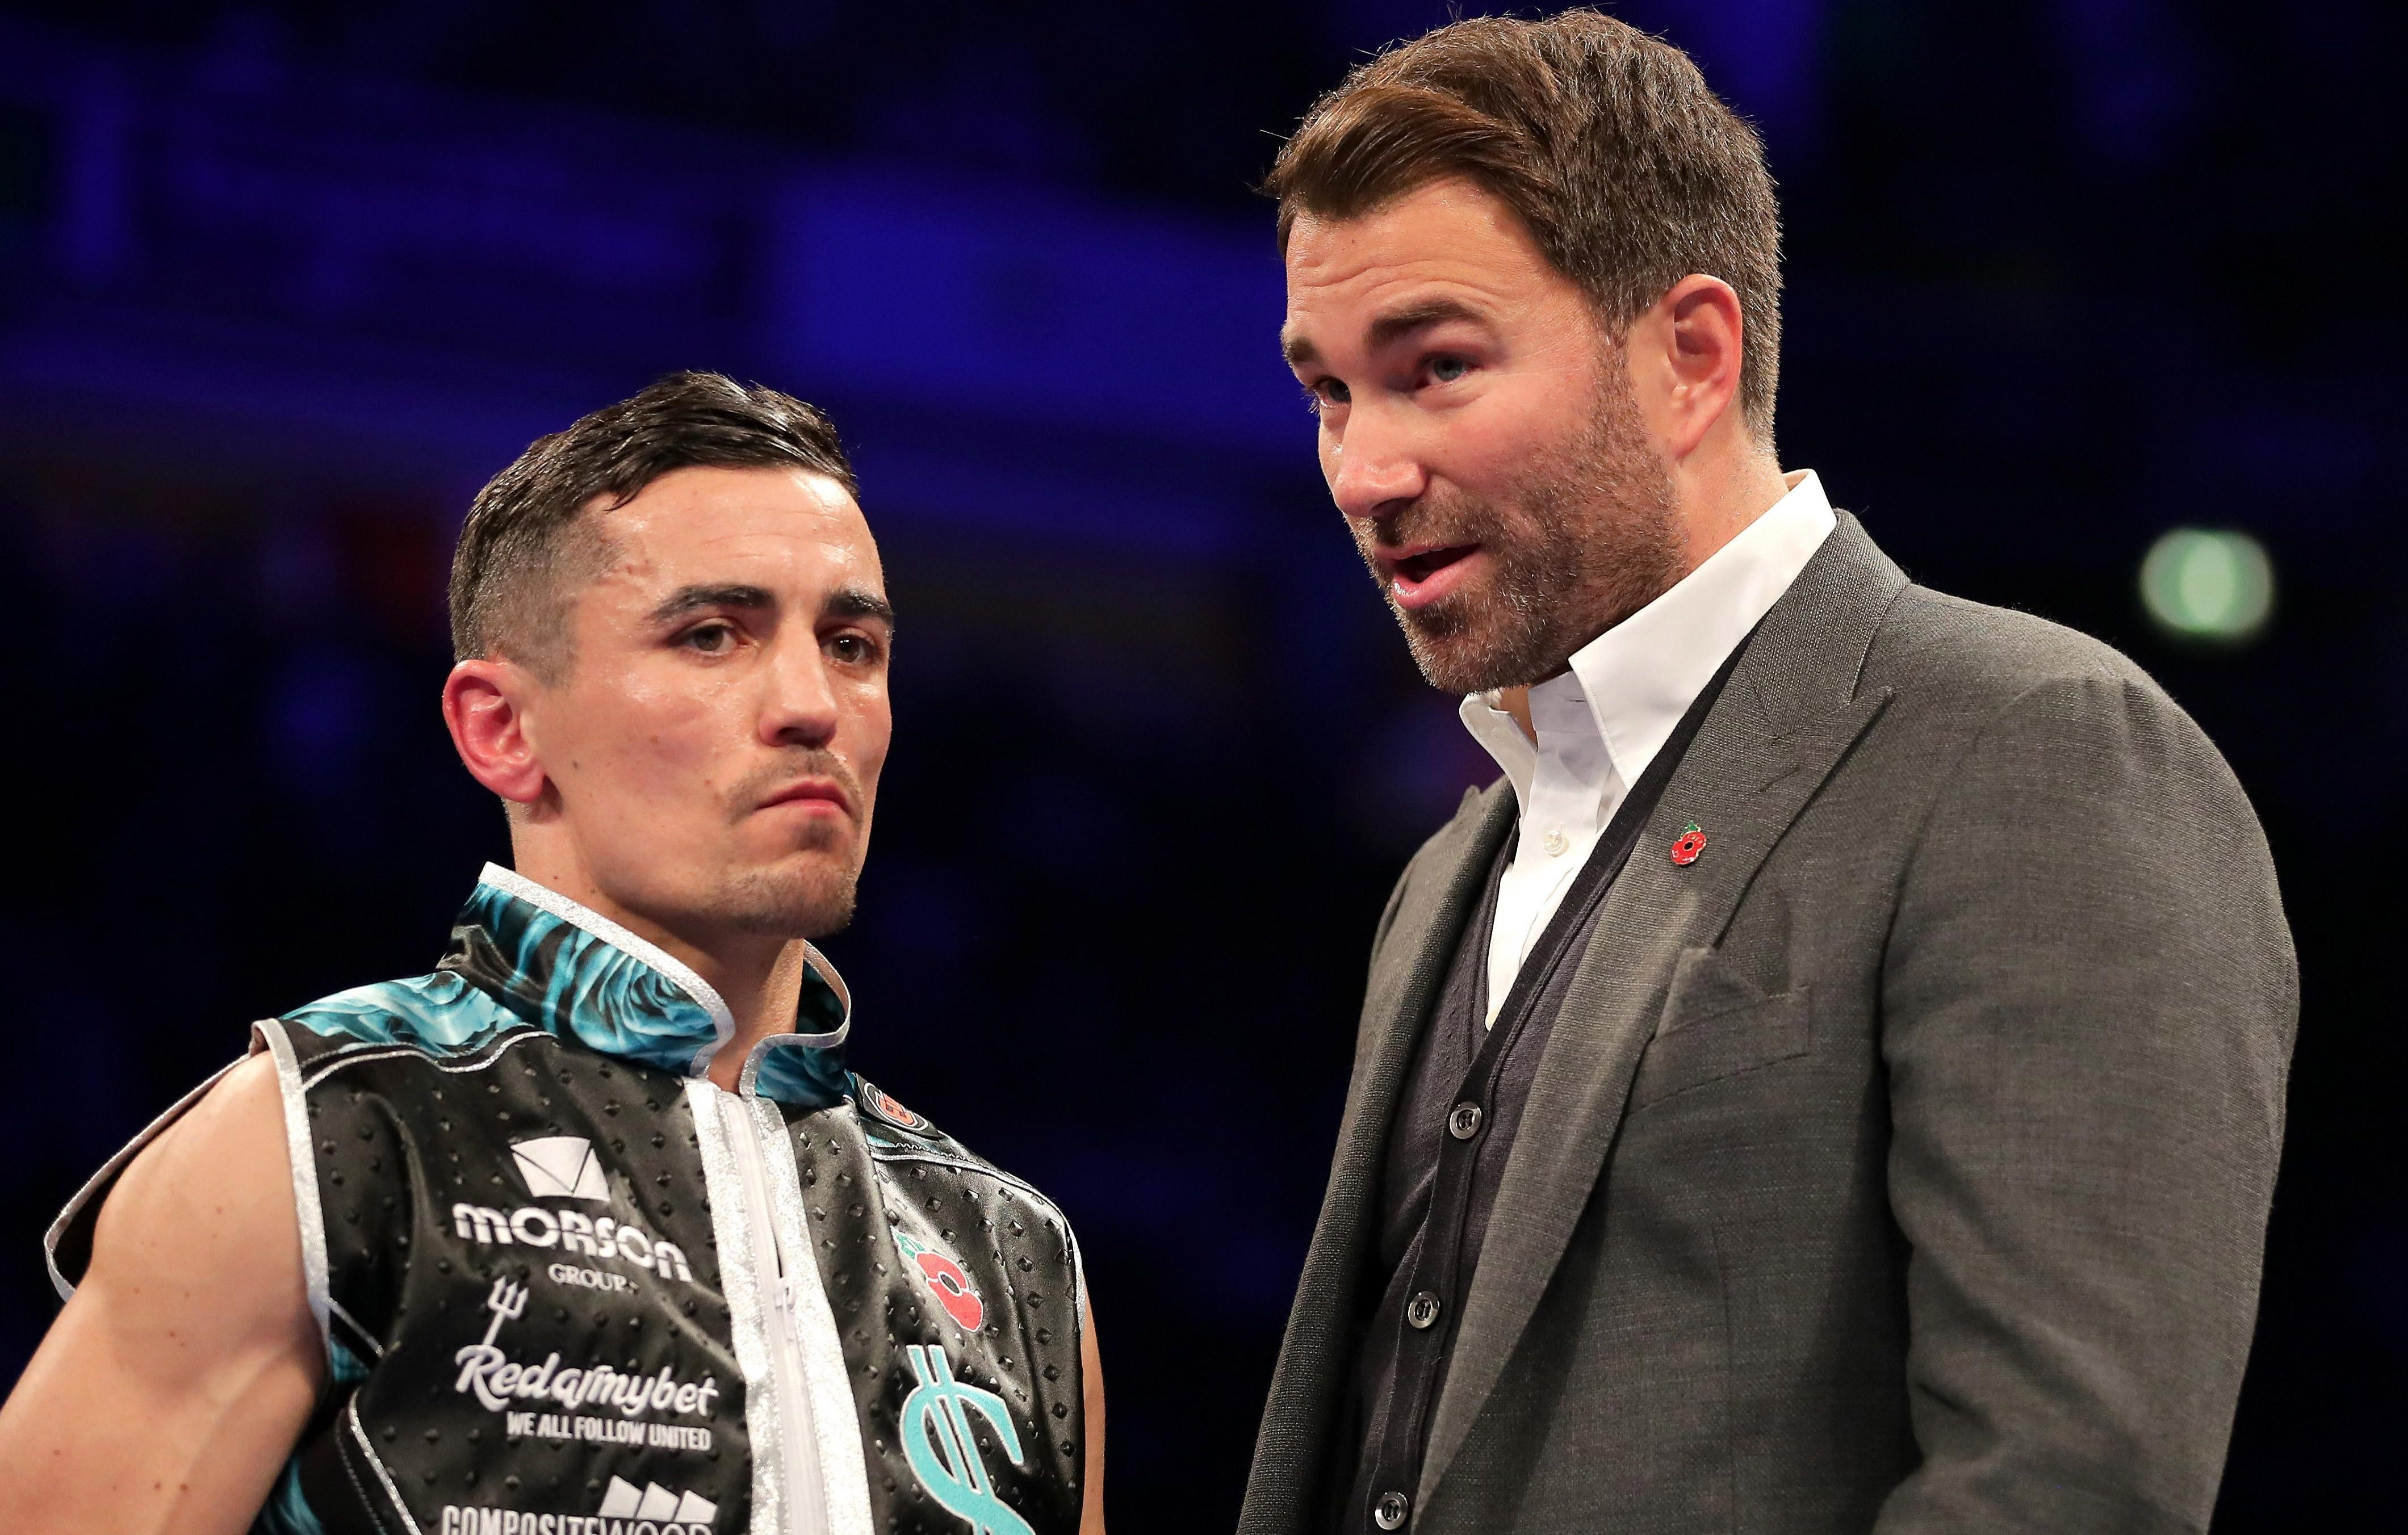 Eddie Hearn has described the prospect of his man Crolla facing Lomachenko as a 'complete disaster'